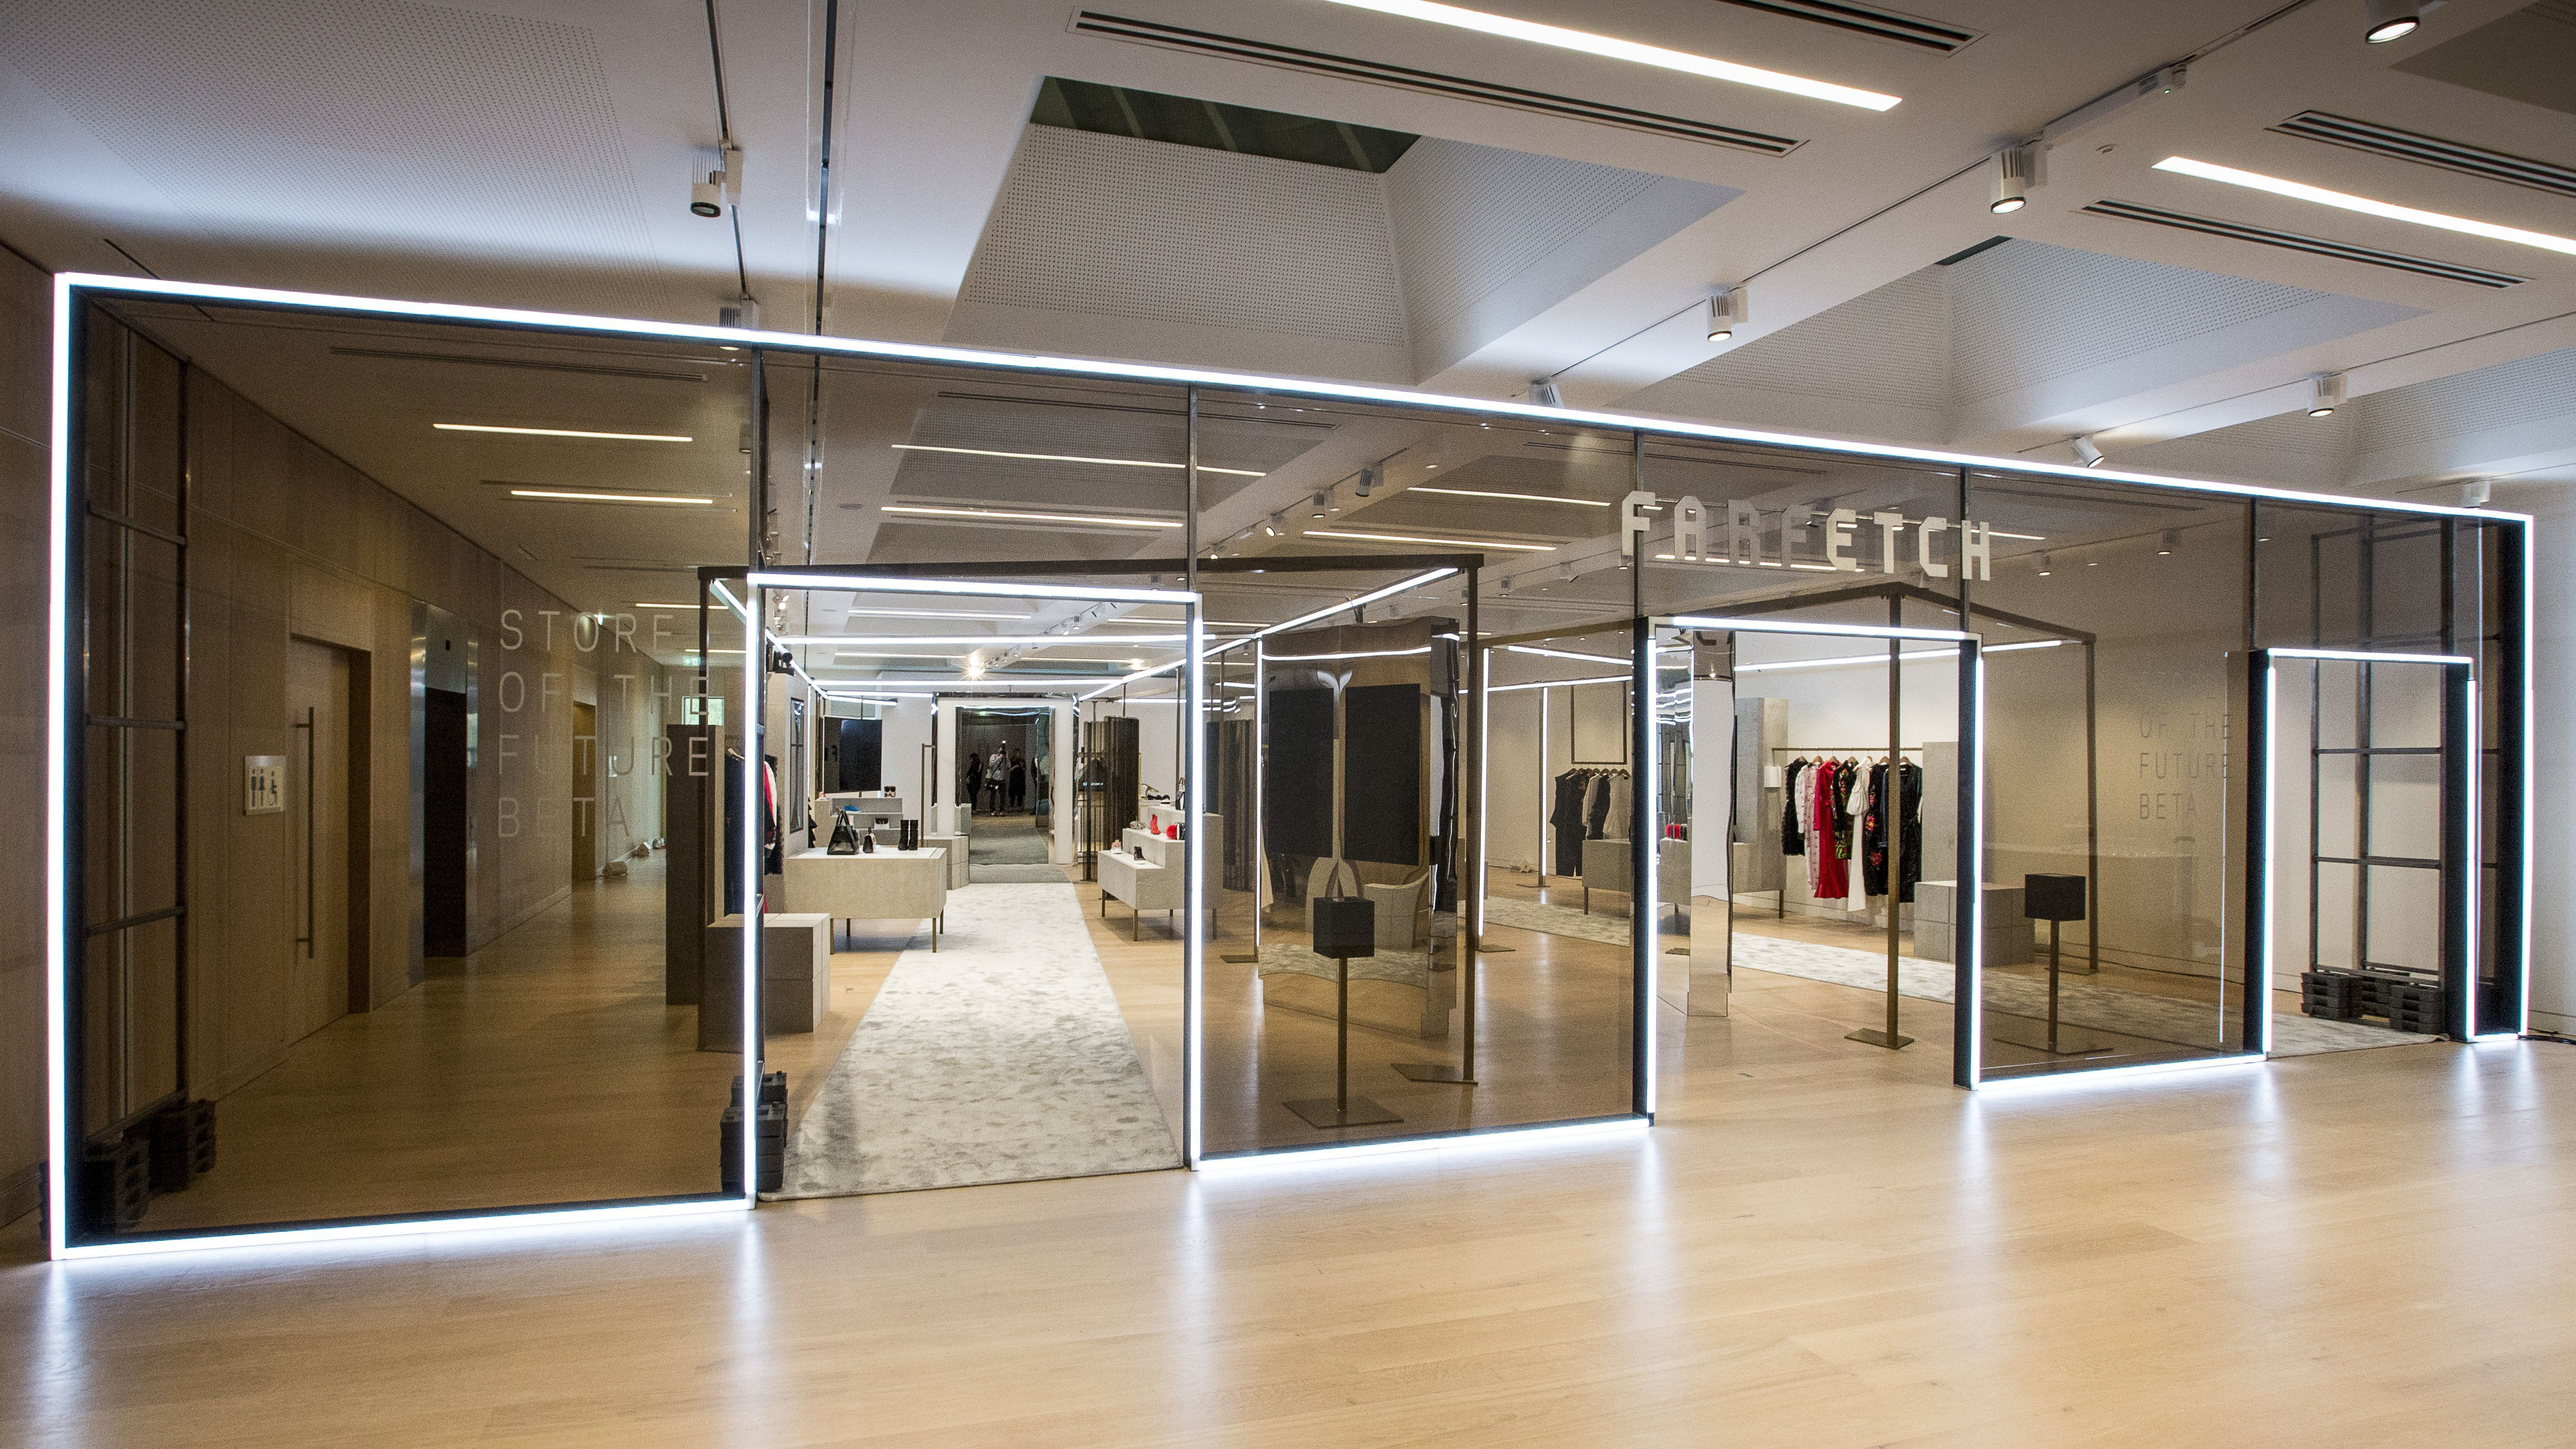 A fantastical new world of high tech high concept stores is